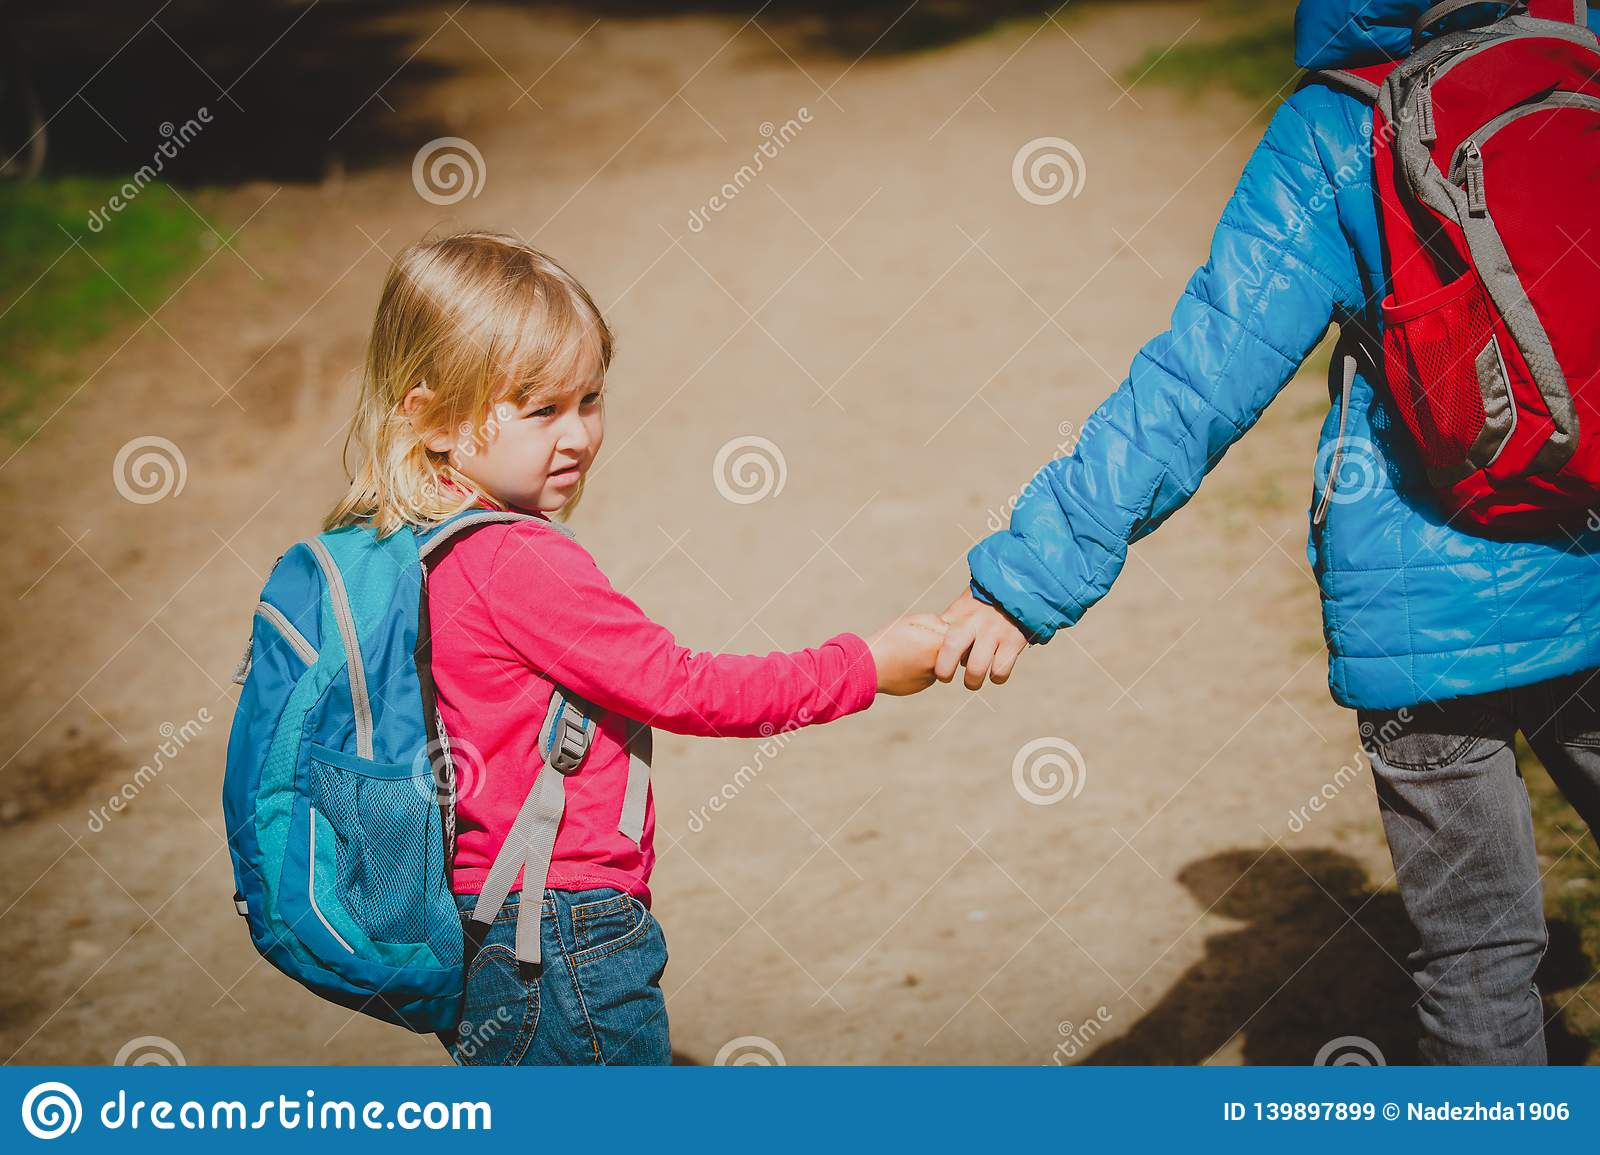 Little boy and girl with backpacks going to school